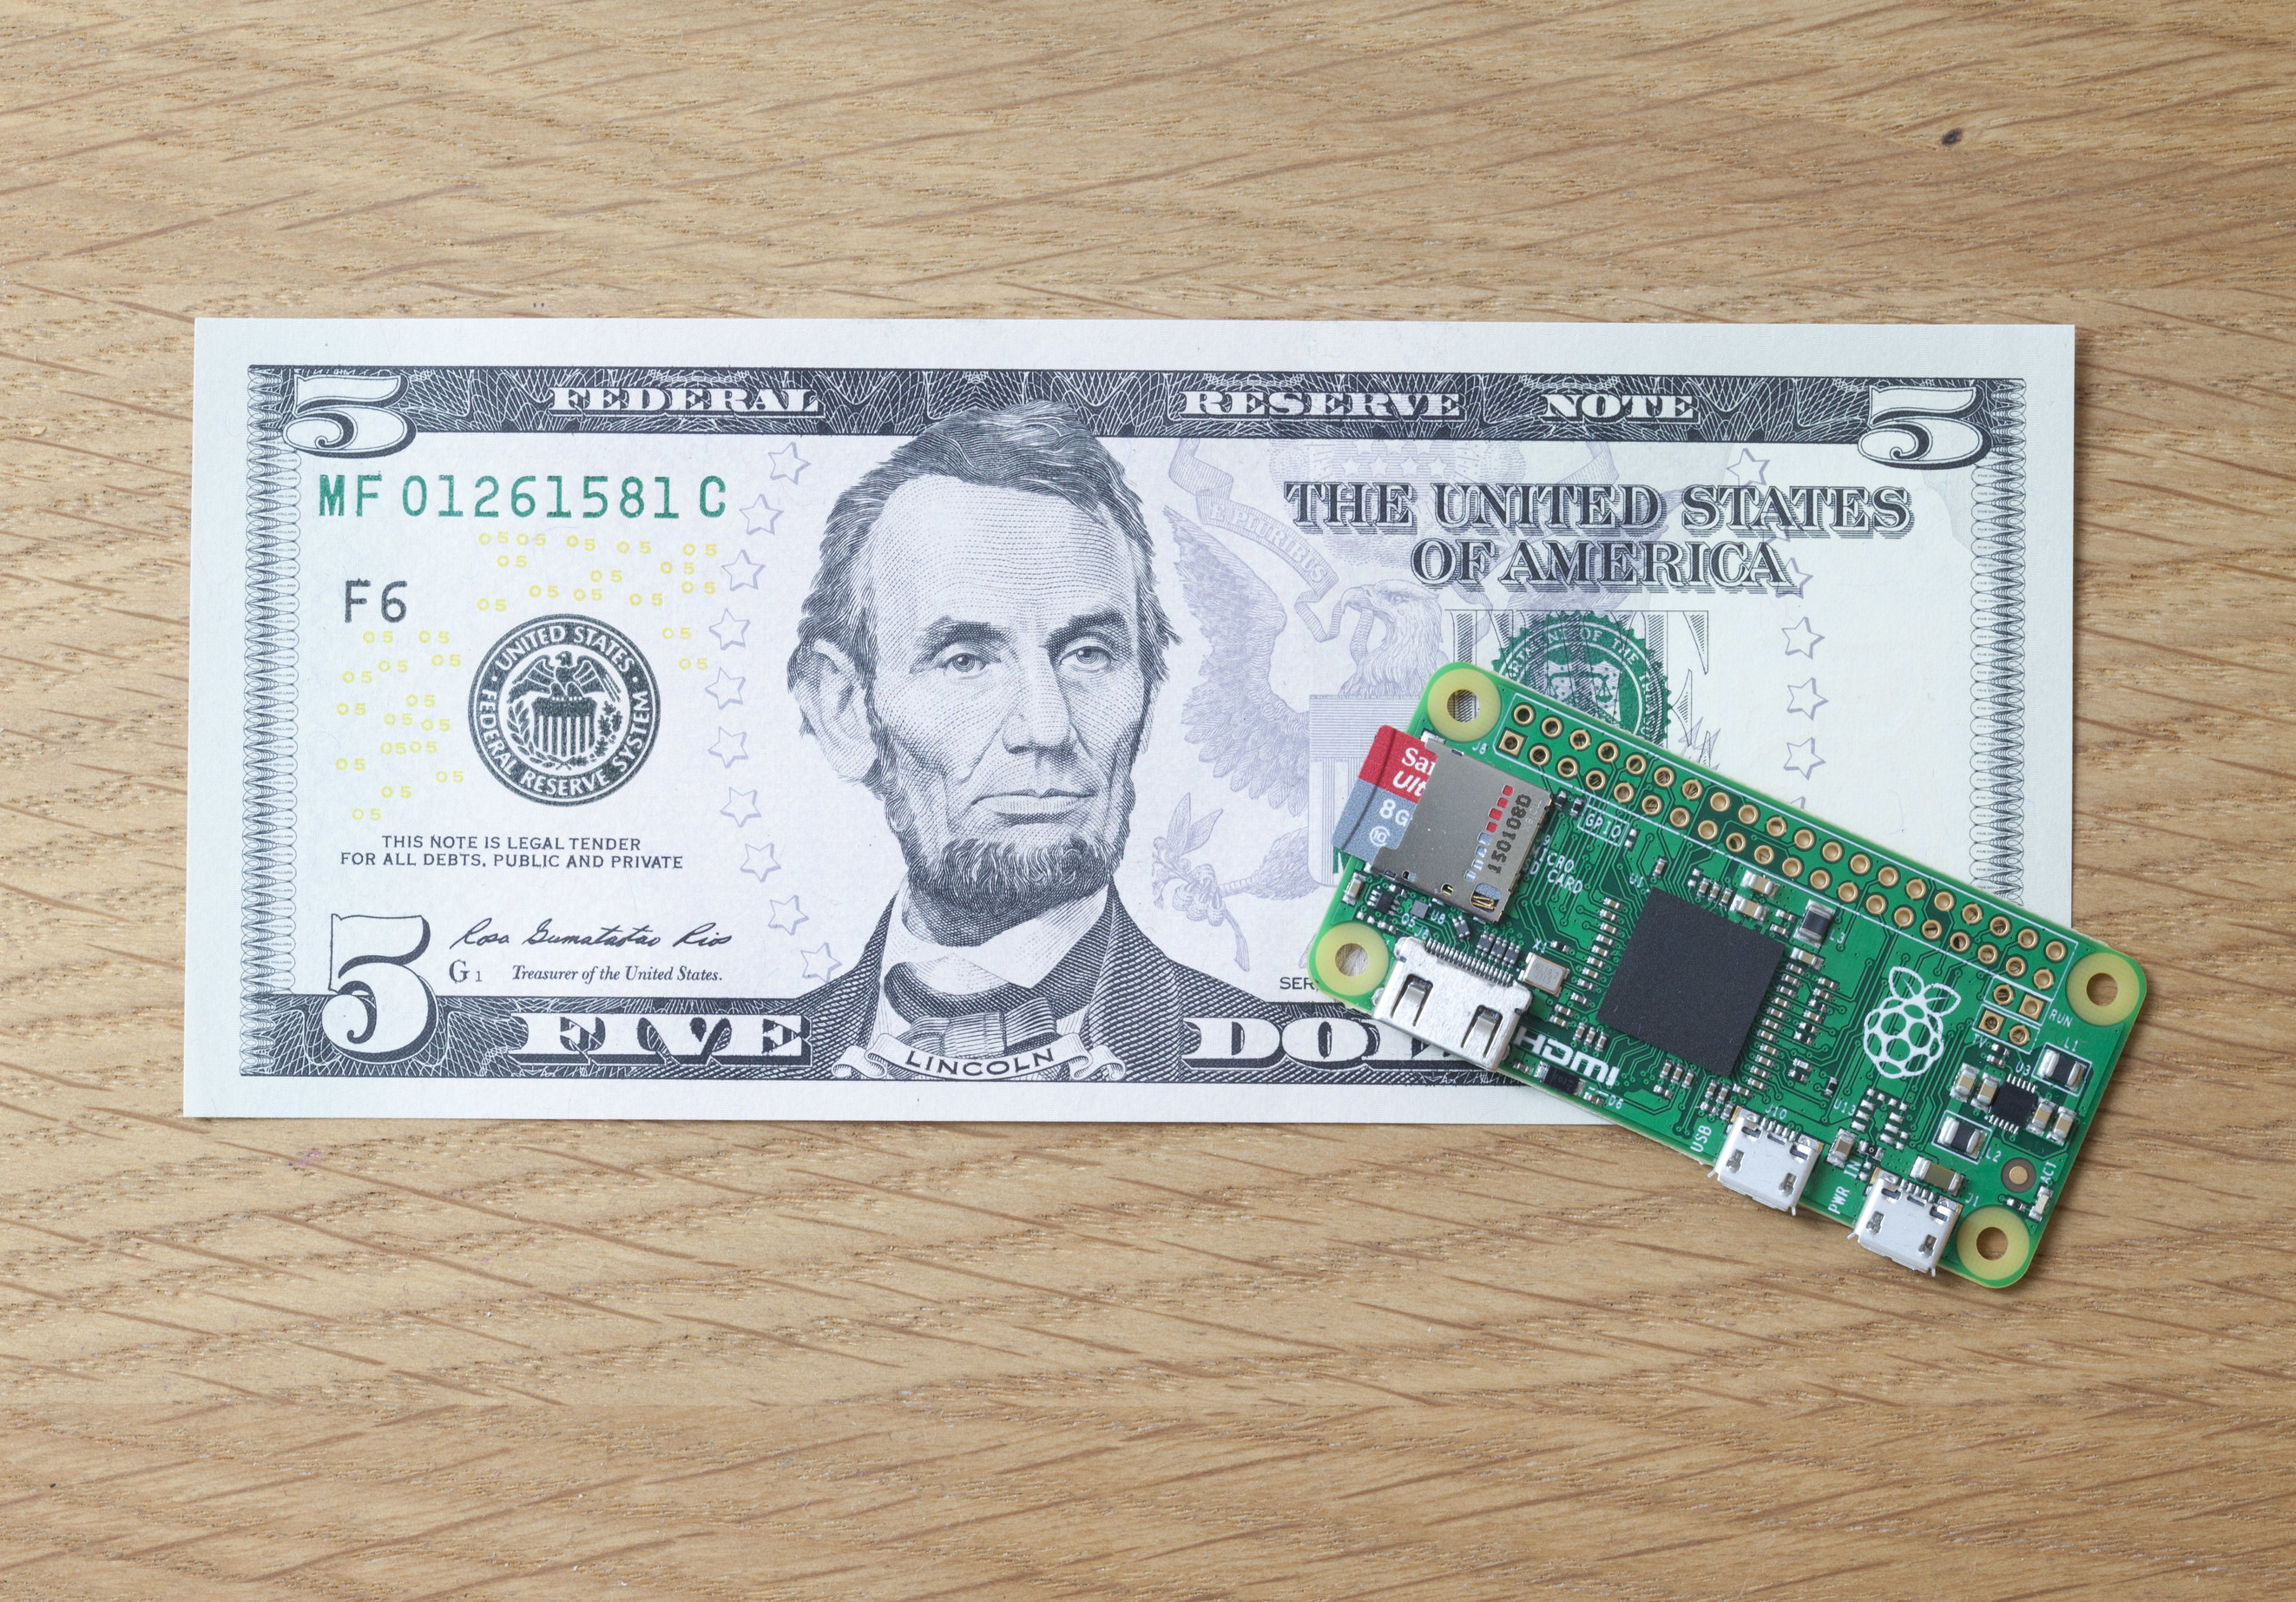 The Raspberry Pi Zero.